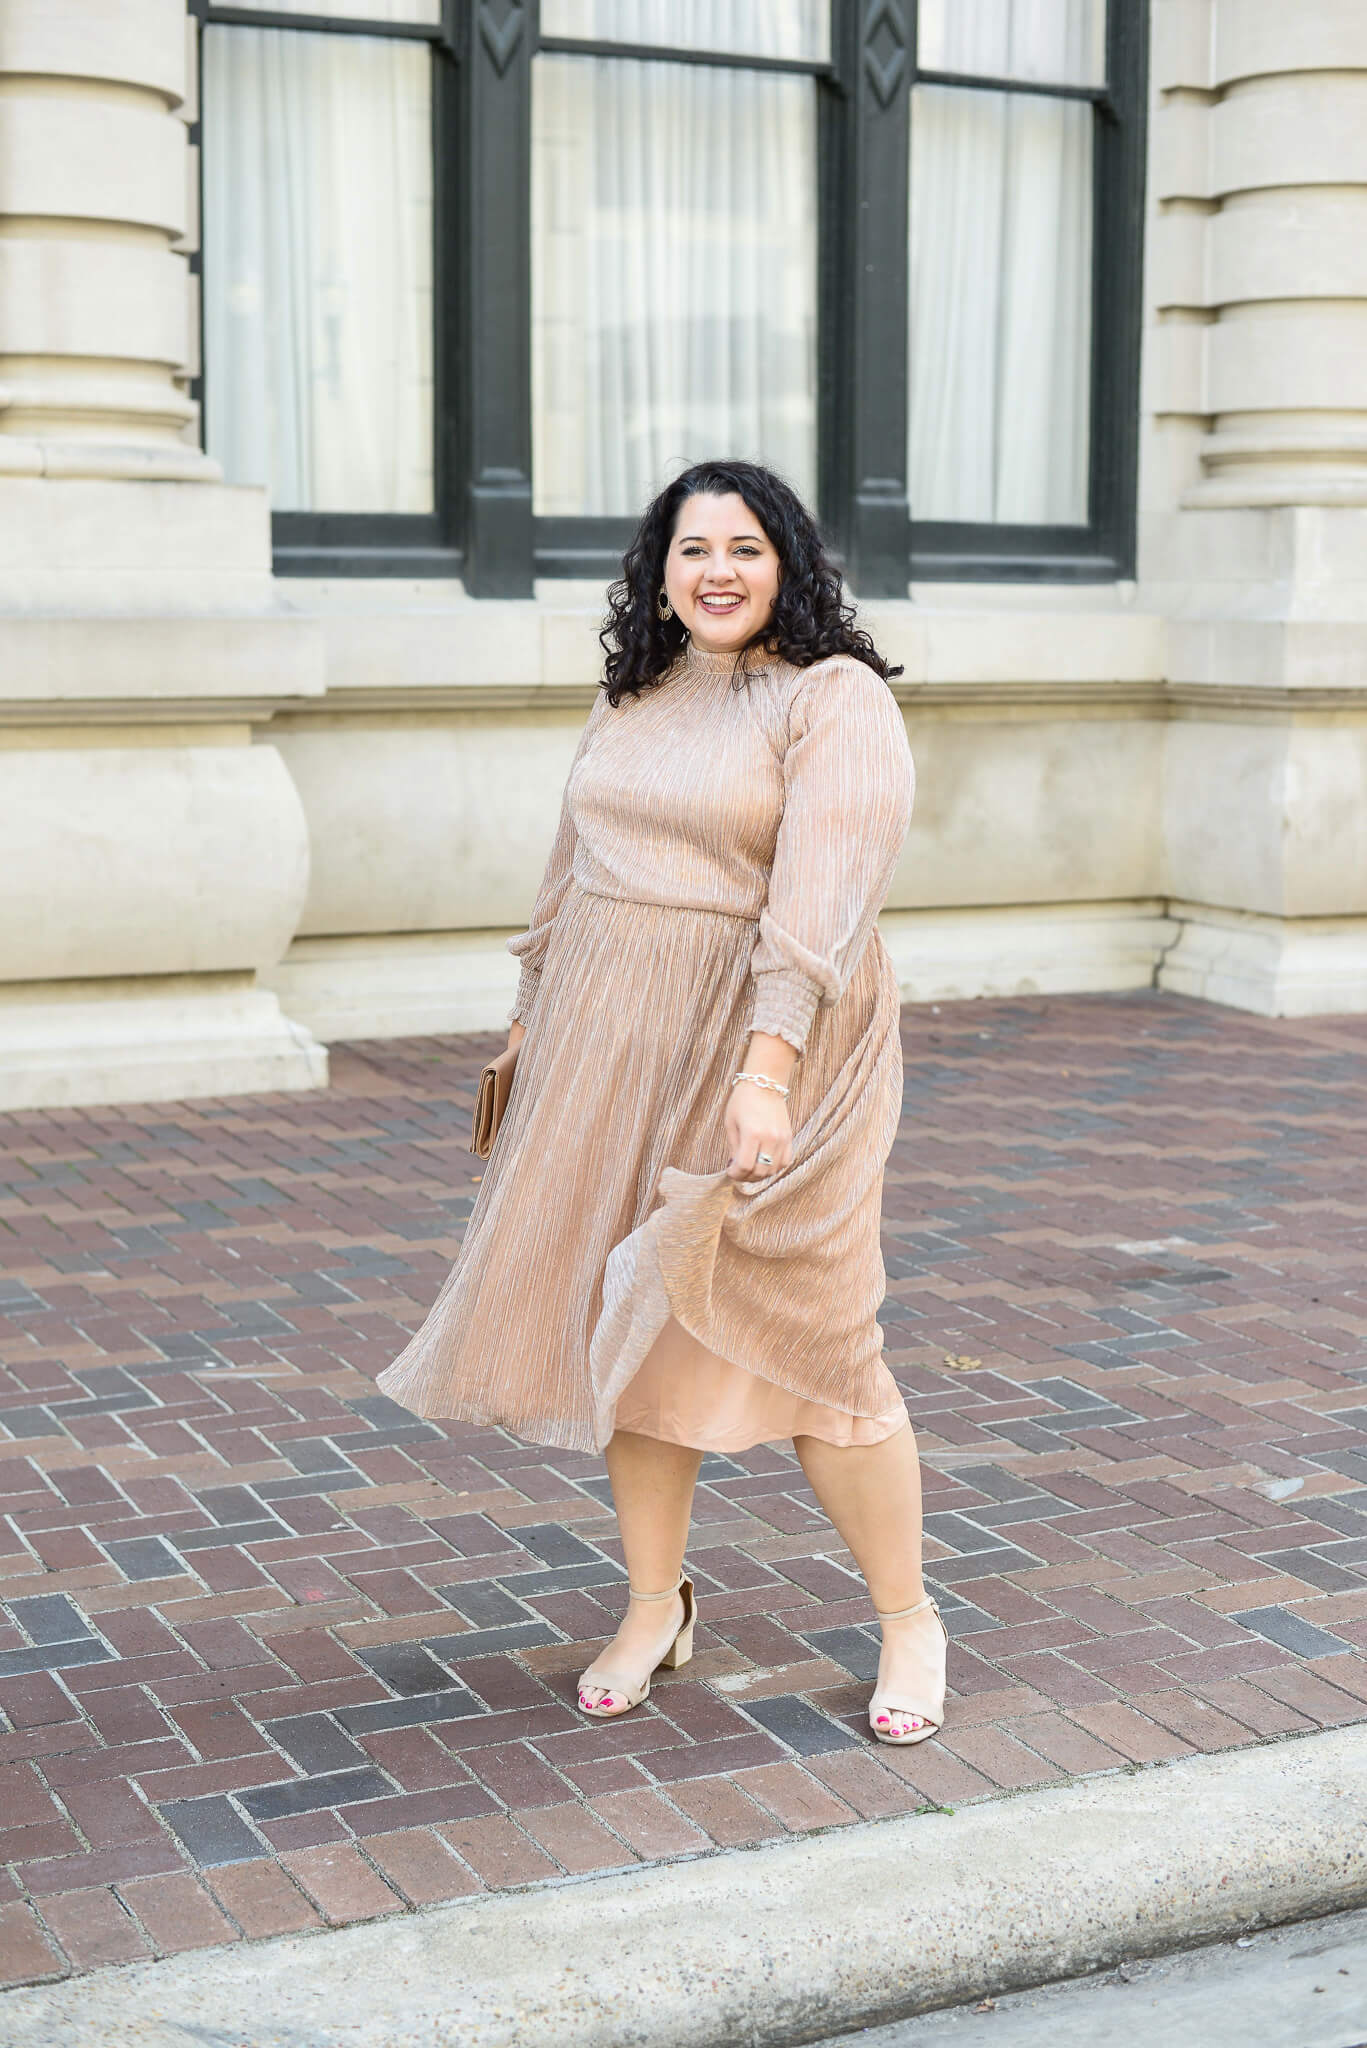 Looking for plus size NYE party outfits? I've rounded up 3 of my favorite for this season